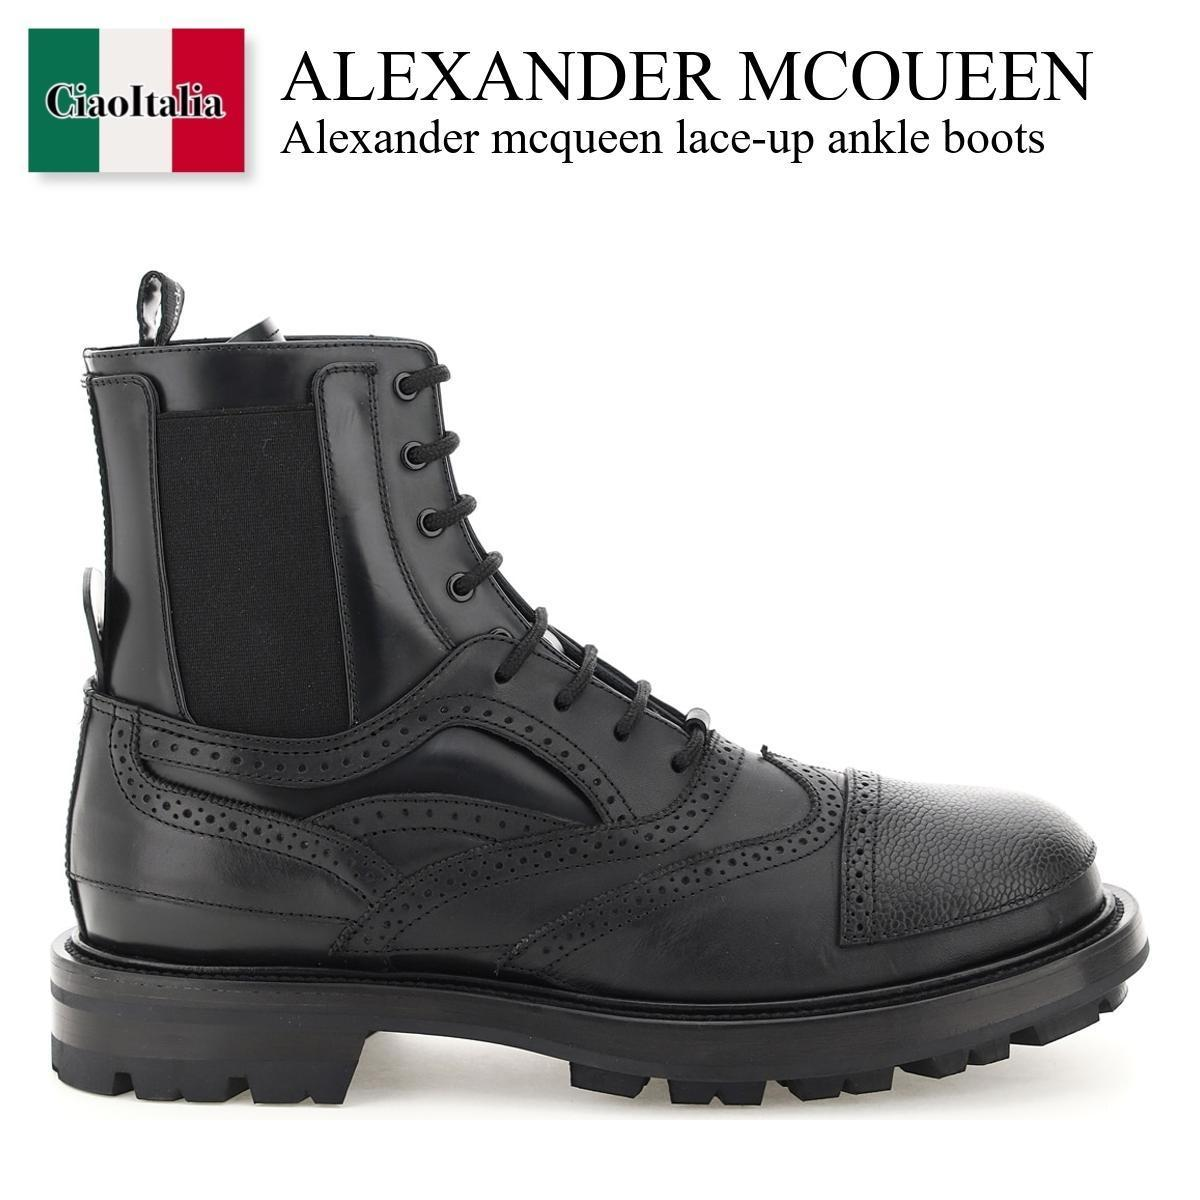 Alexander mcqueen lace-up ankle boots (alexander mcqueen/ブーツ) ALEXANDER MCQUEEN LACE-UP ANKLE BOOTS  667912 WHRWM  667912 WHRWM 1000